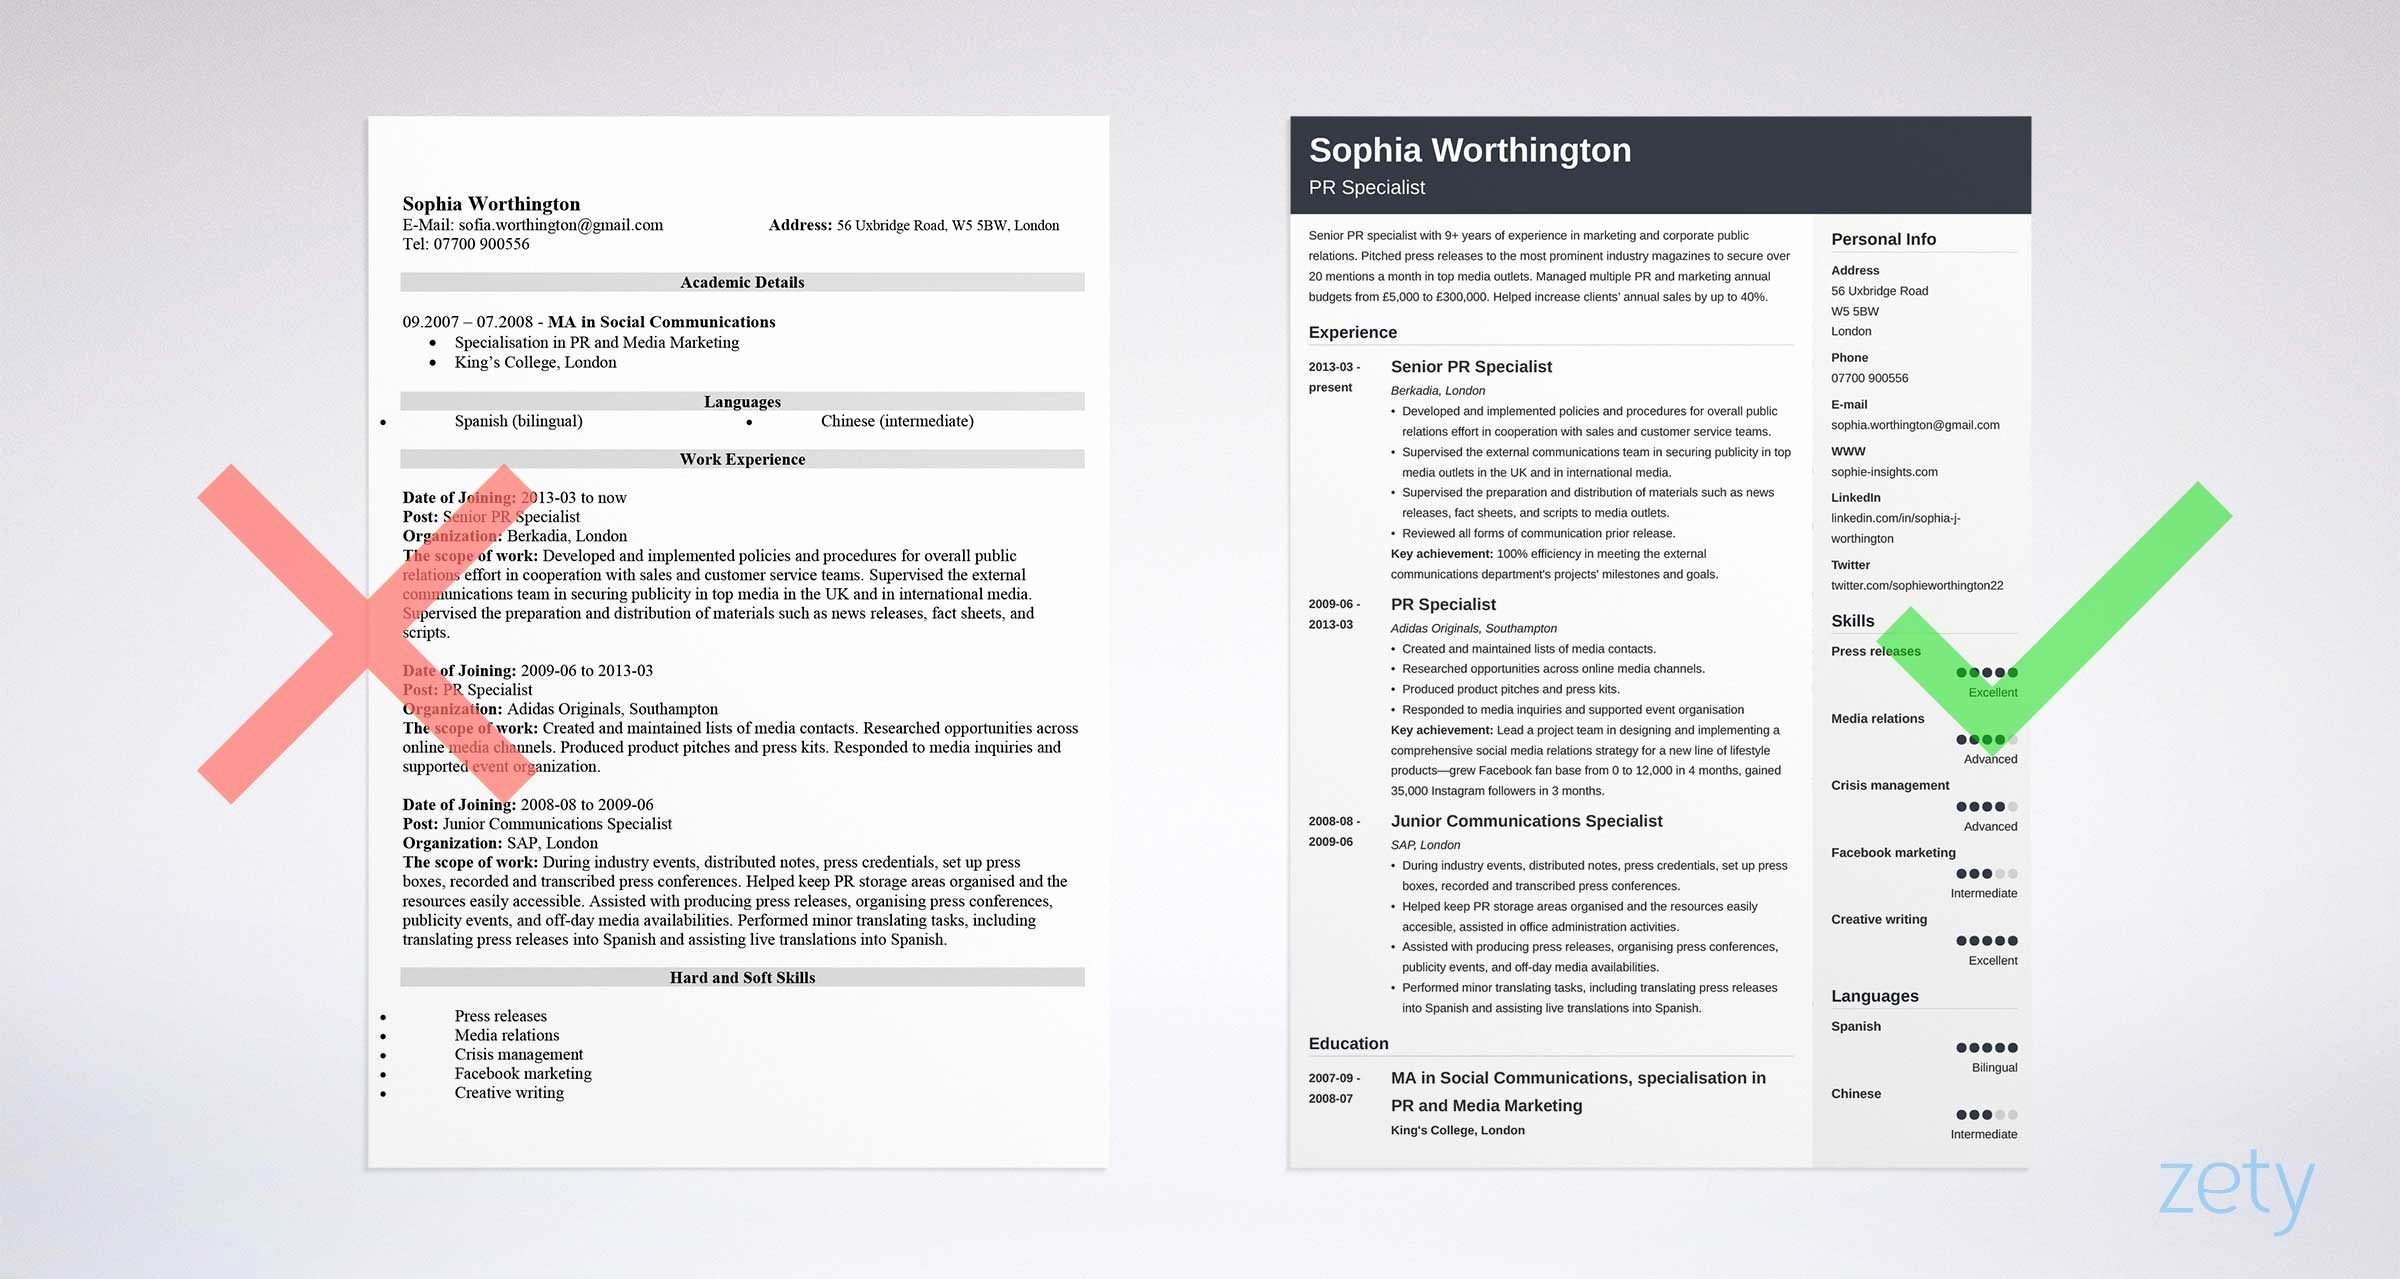 Sample Academic Curriculum Vitae Best Of Cv format the Best Structure for A Curriculum Vitae [30